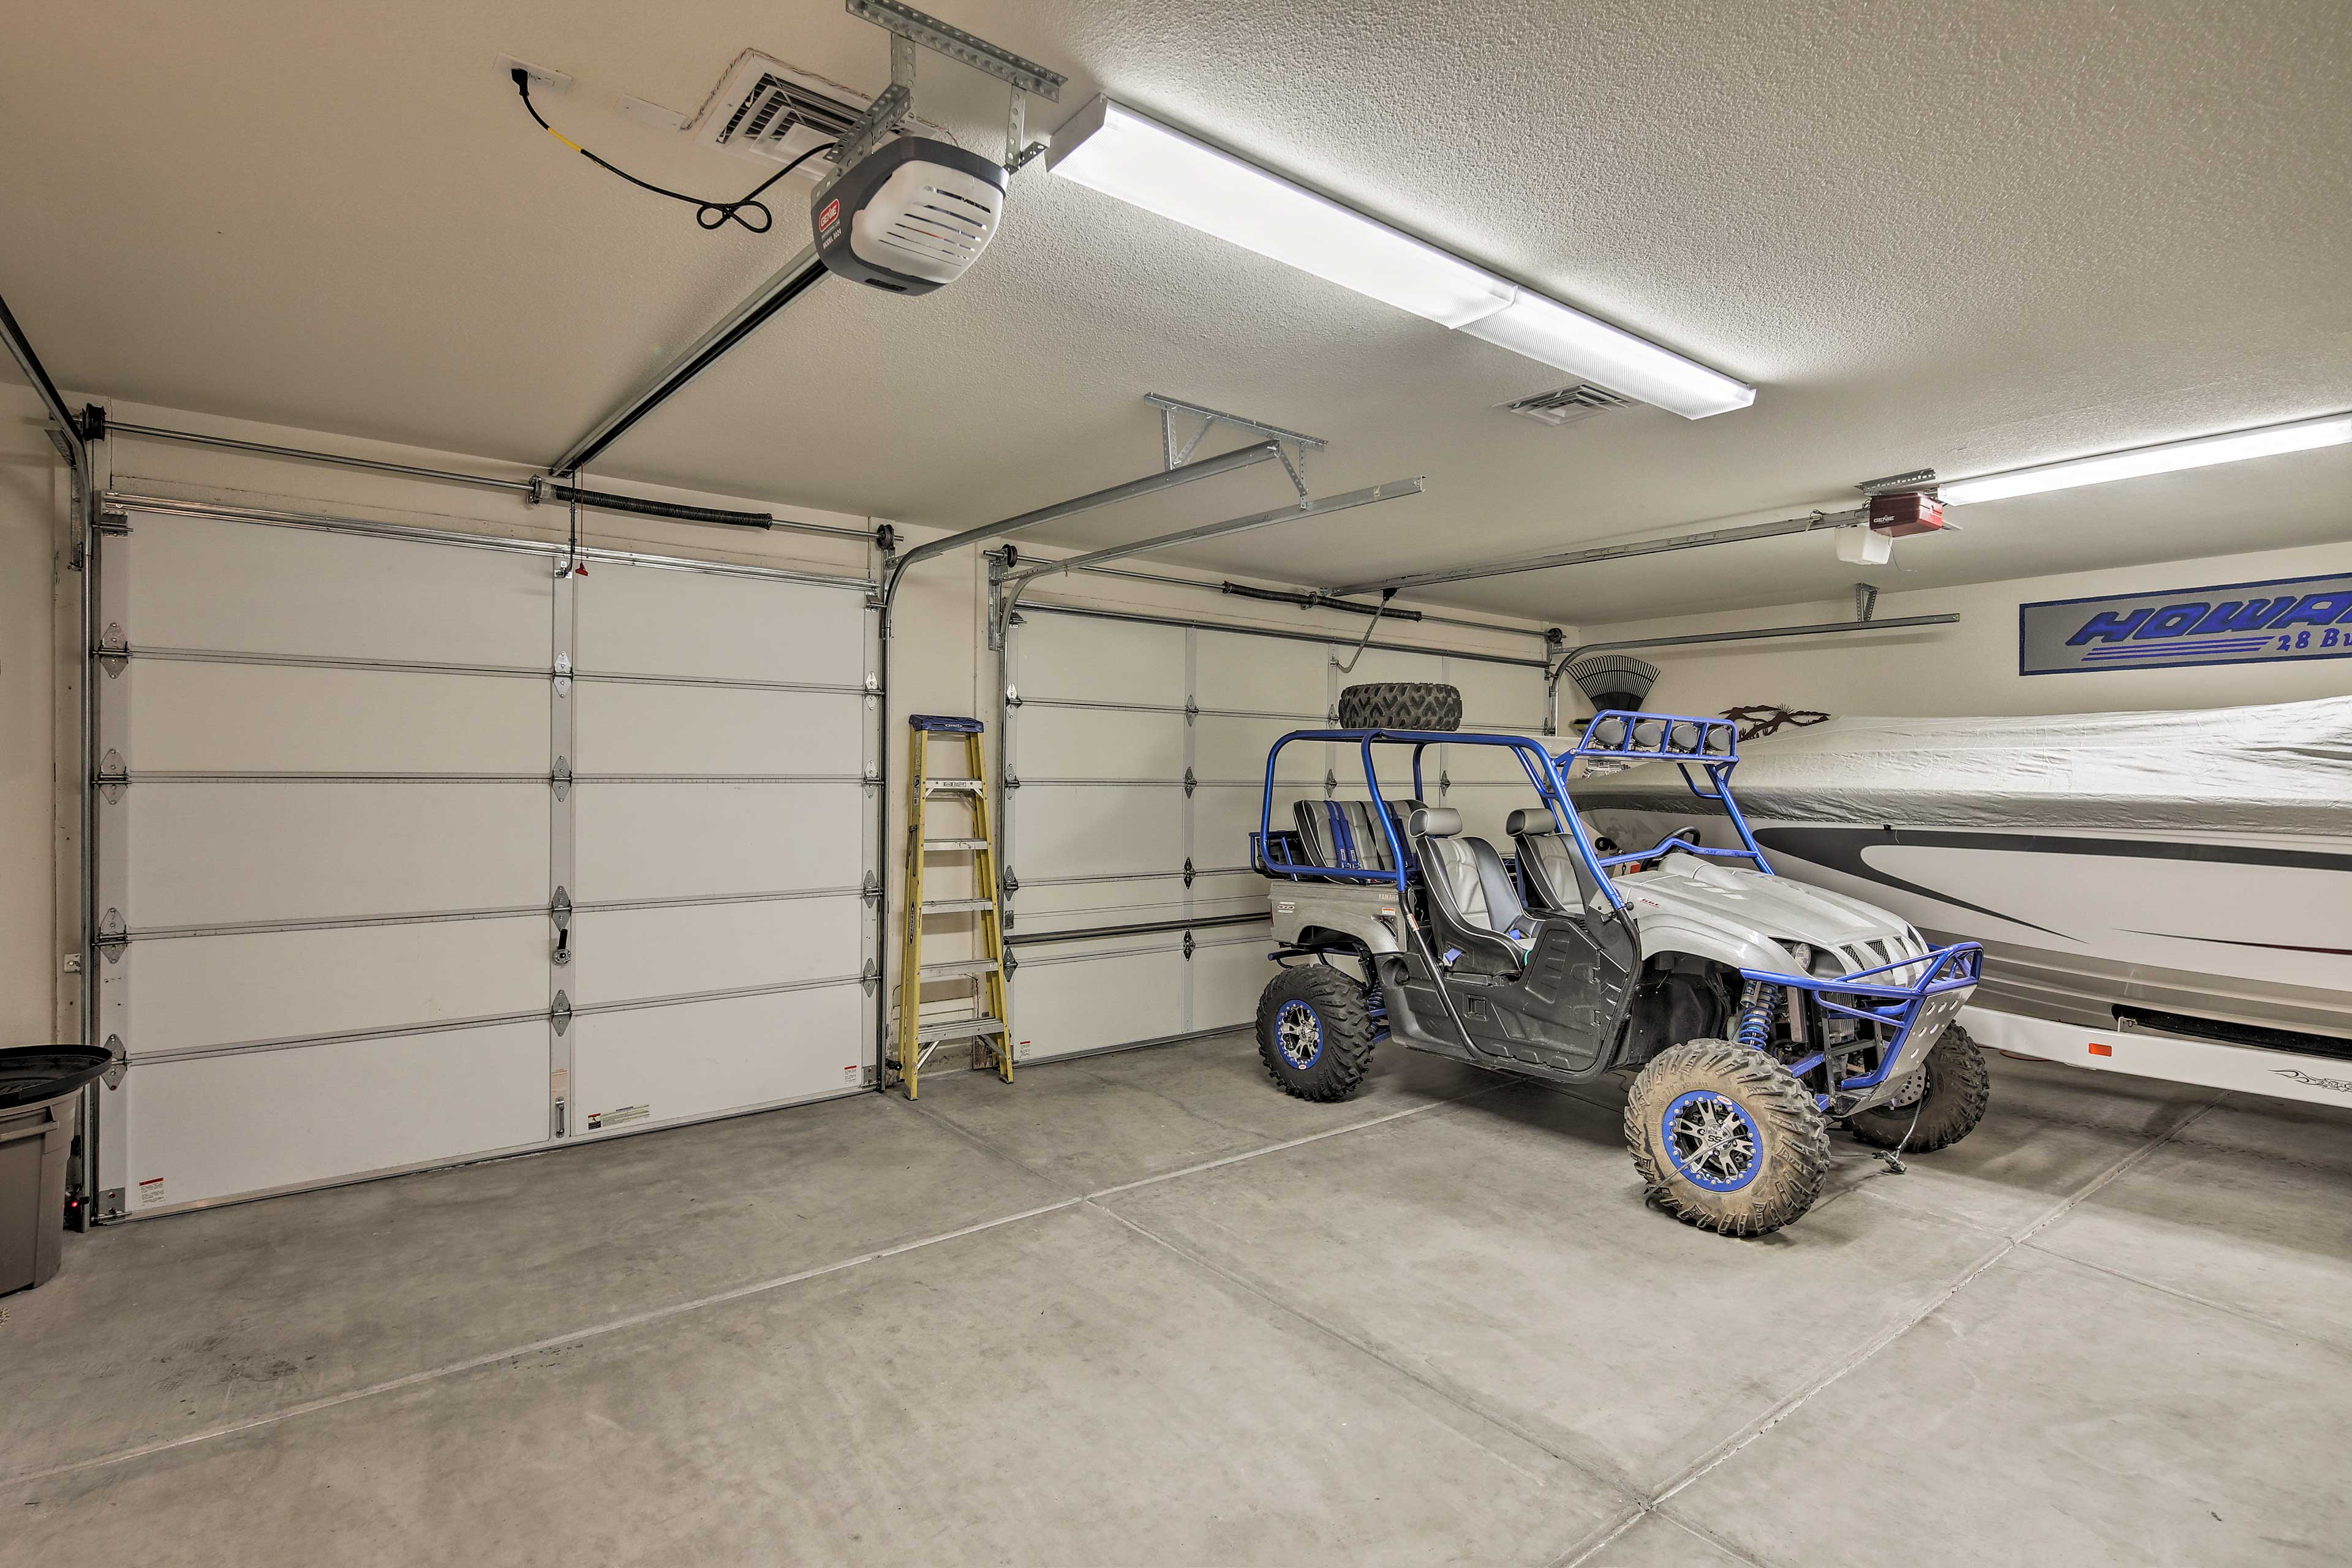 One vehicle can be parked in the garage, and 6 more in the driveway.